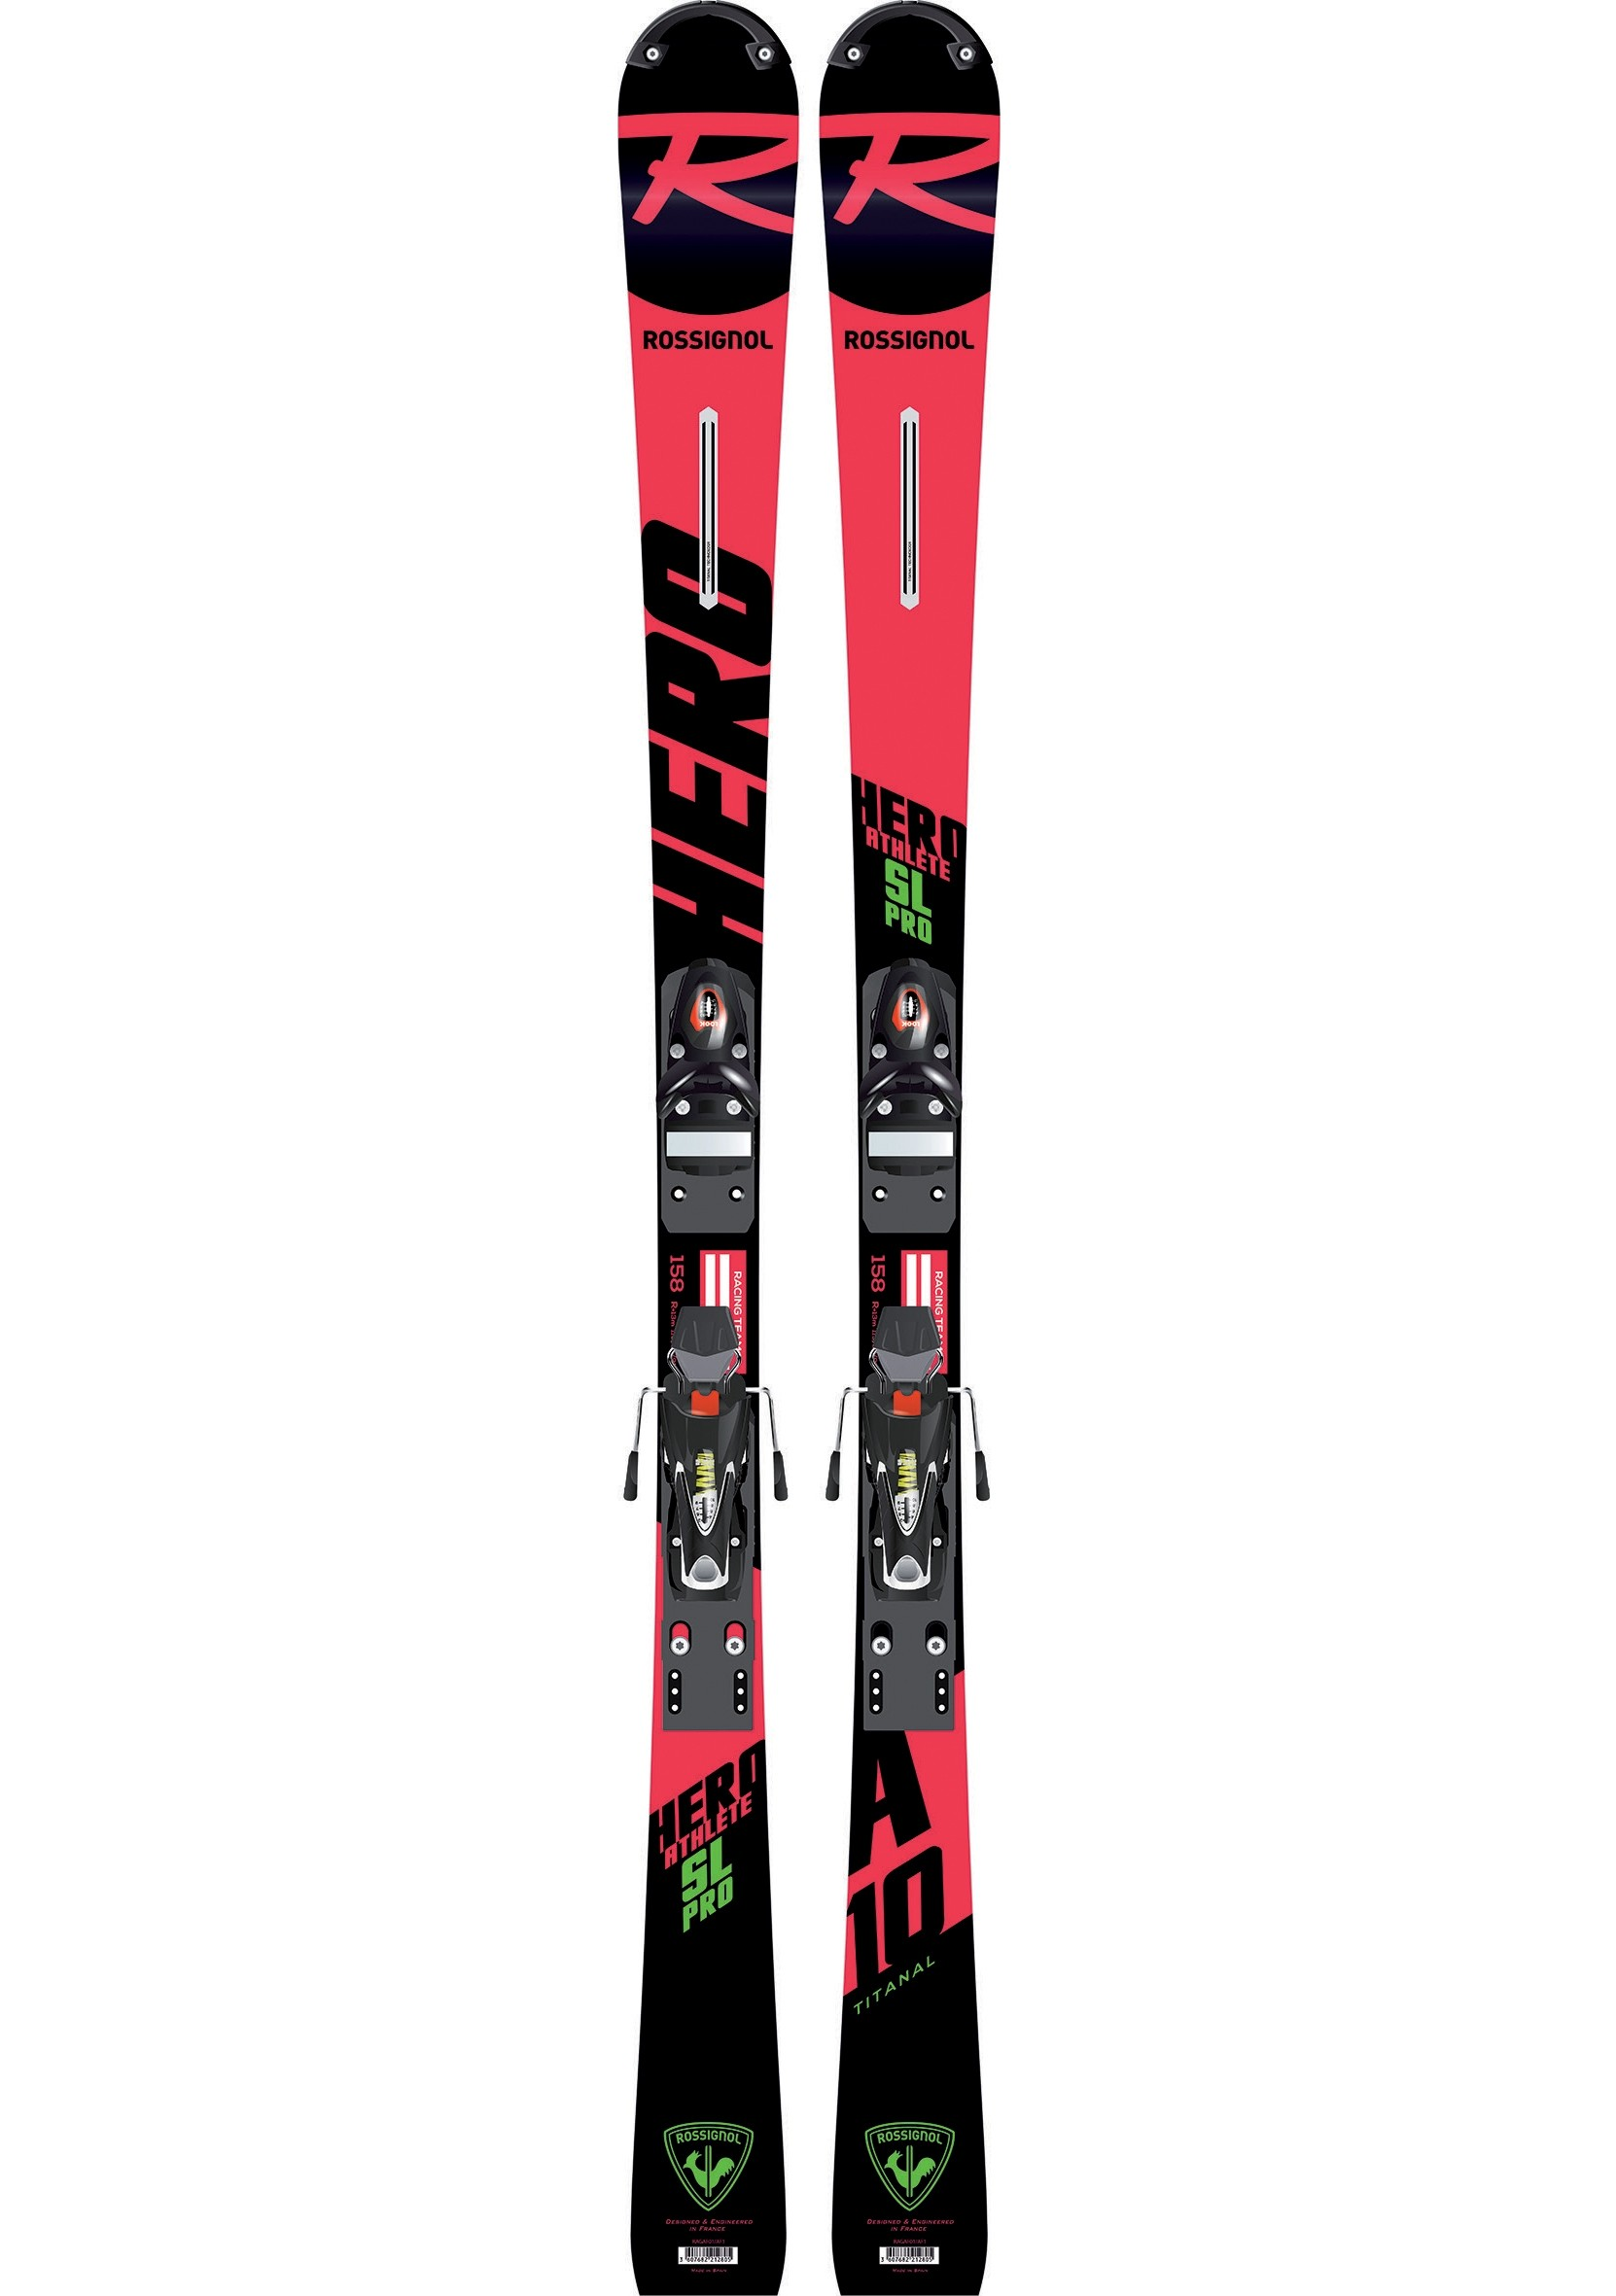 rossignol skis hero athlete sl pro jr 2019